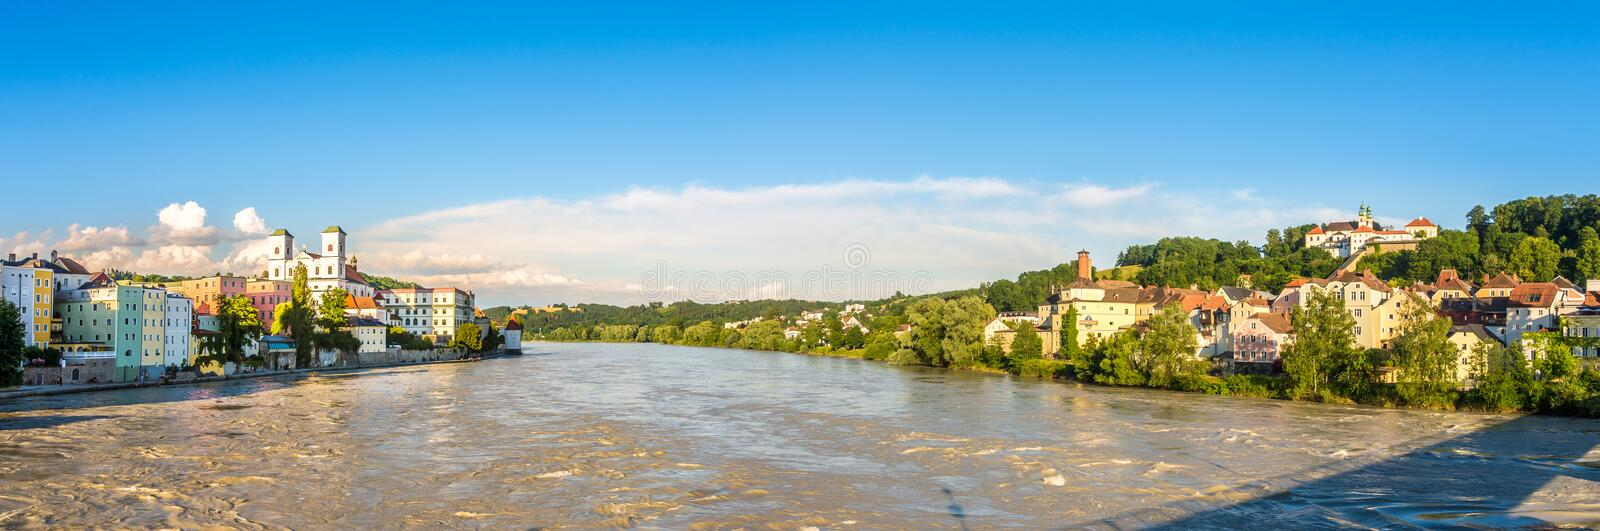 Panoramic view at the Embankments of Inn River in Passau - Germany. Panoramic view at the Embankments of Inn River in Passau, Germany stock photo